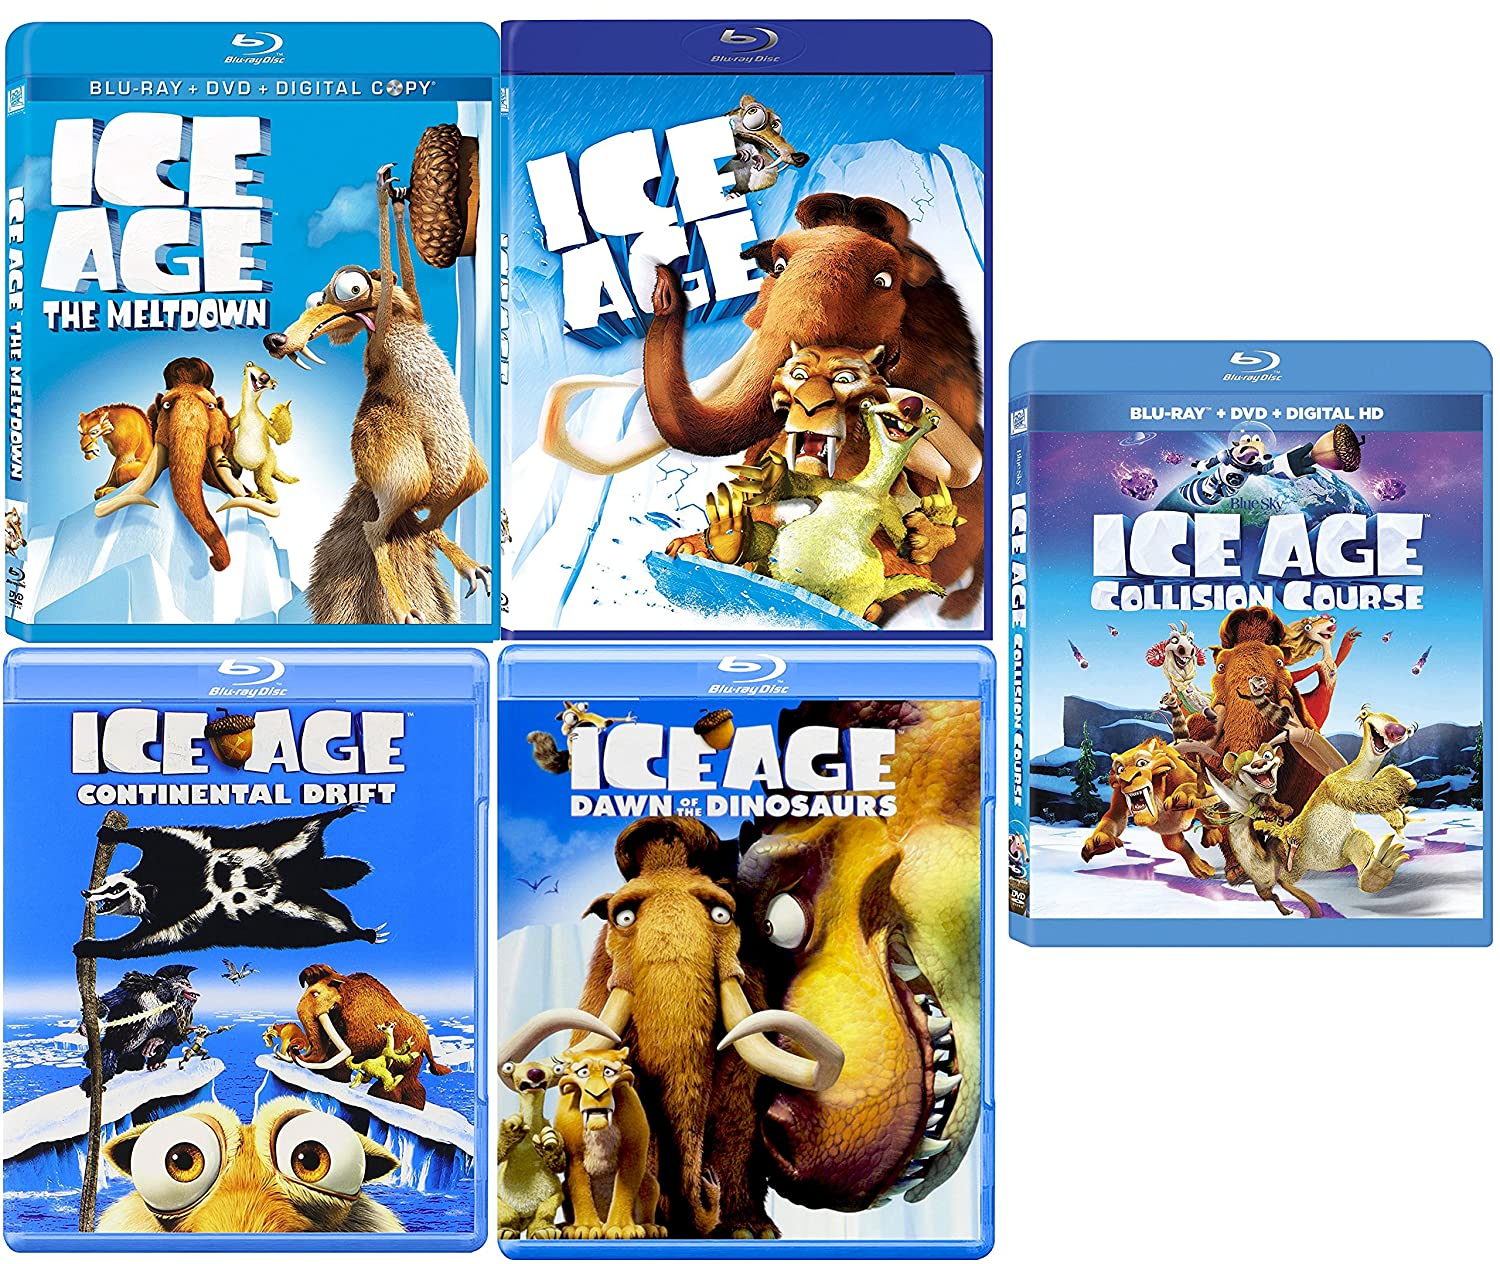 Amazon Com Ice Age Collection 5 Movie Collection Blu Ray Collision Course The Meltdown Continental Drift Dawn Of The Dinosaurs Cartoon Set Denis Leary John Leguizamo Ray Romano Goran Visnjic